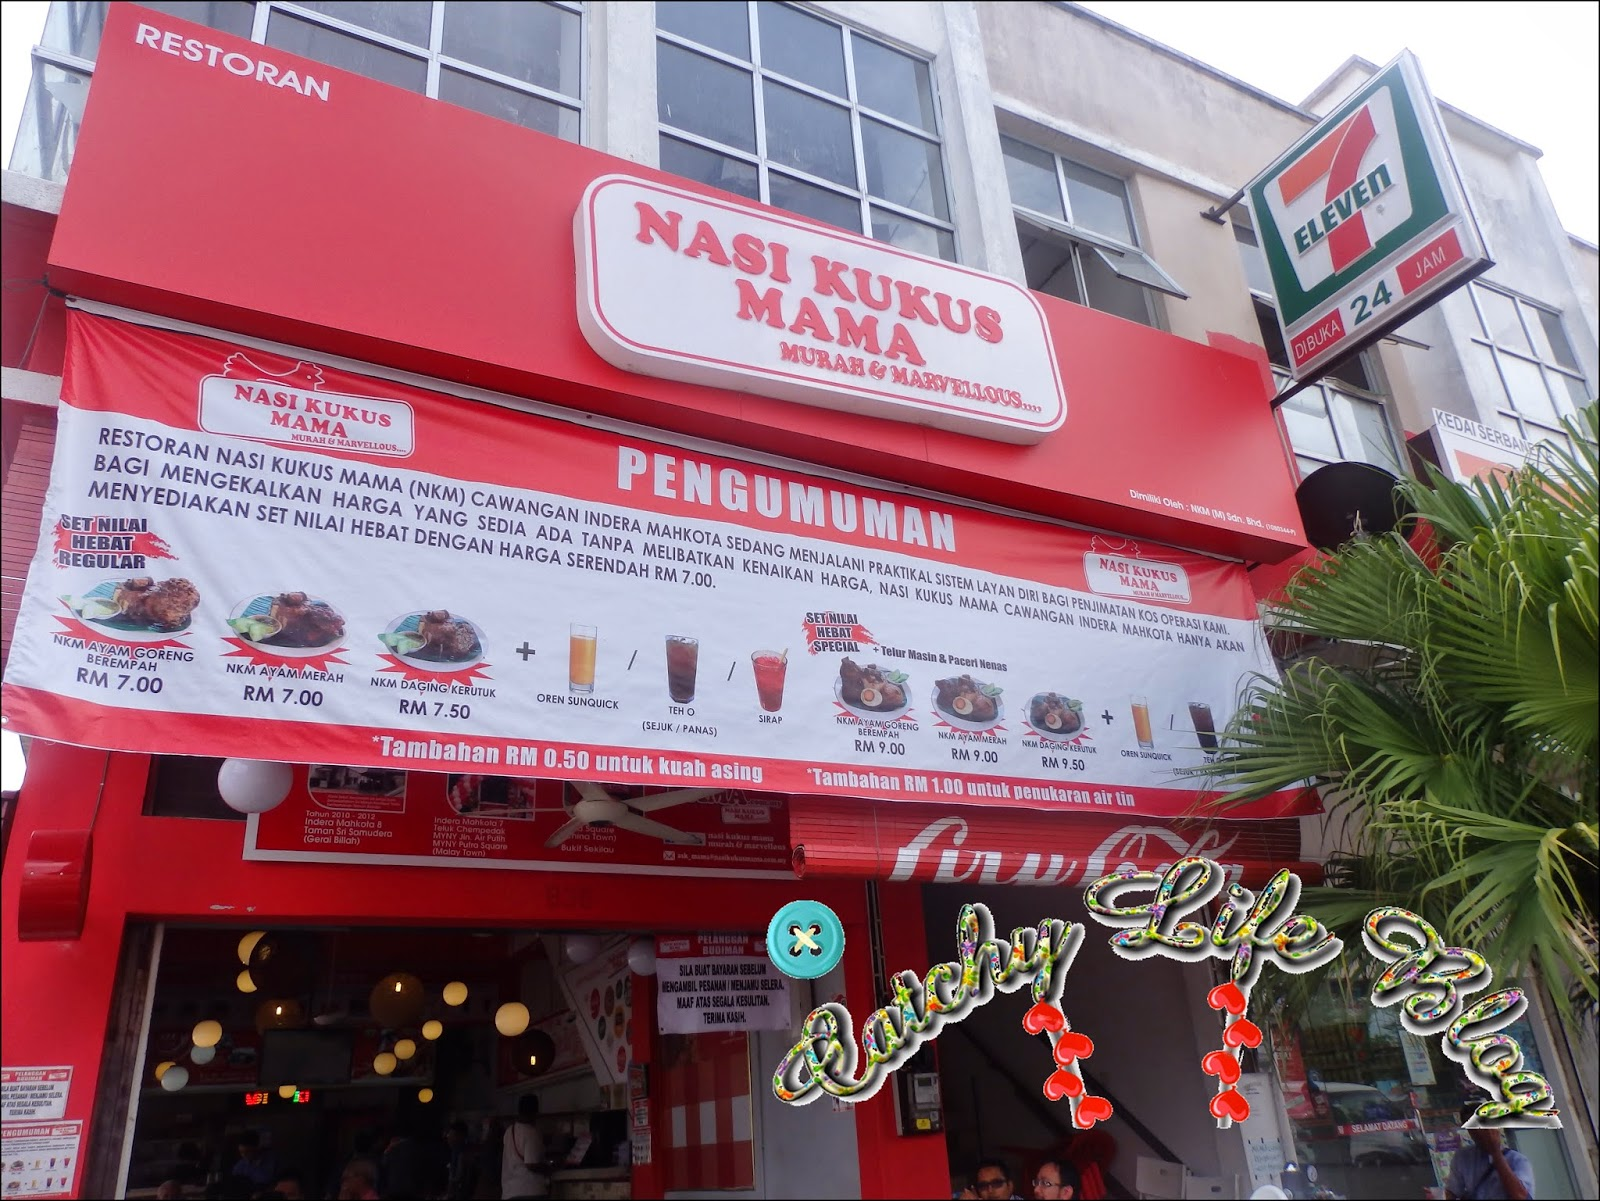 One Of The Branch Infront Iium Kuantan That I Mentioned Above With Tagline Murah Marvellous